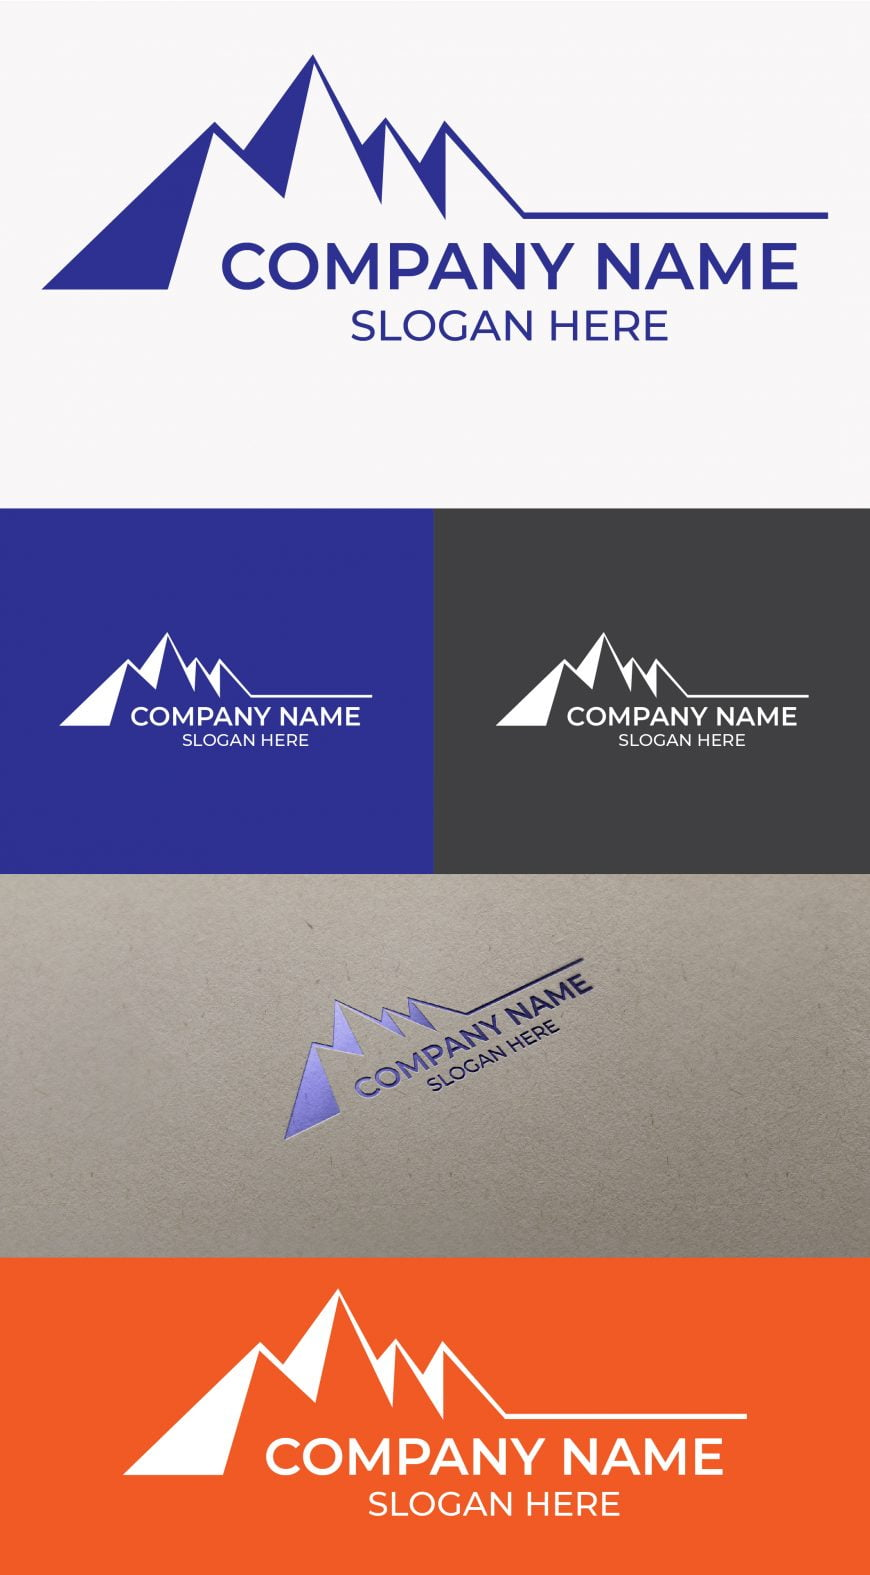 Mountain-logo-free-Template-scaled